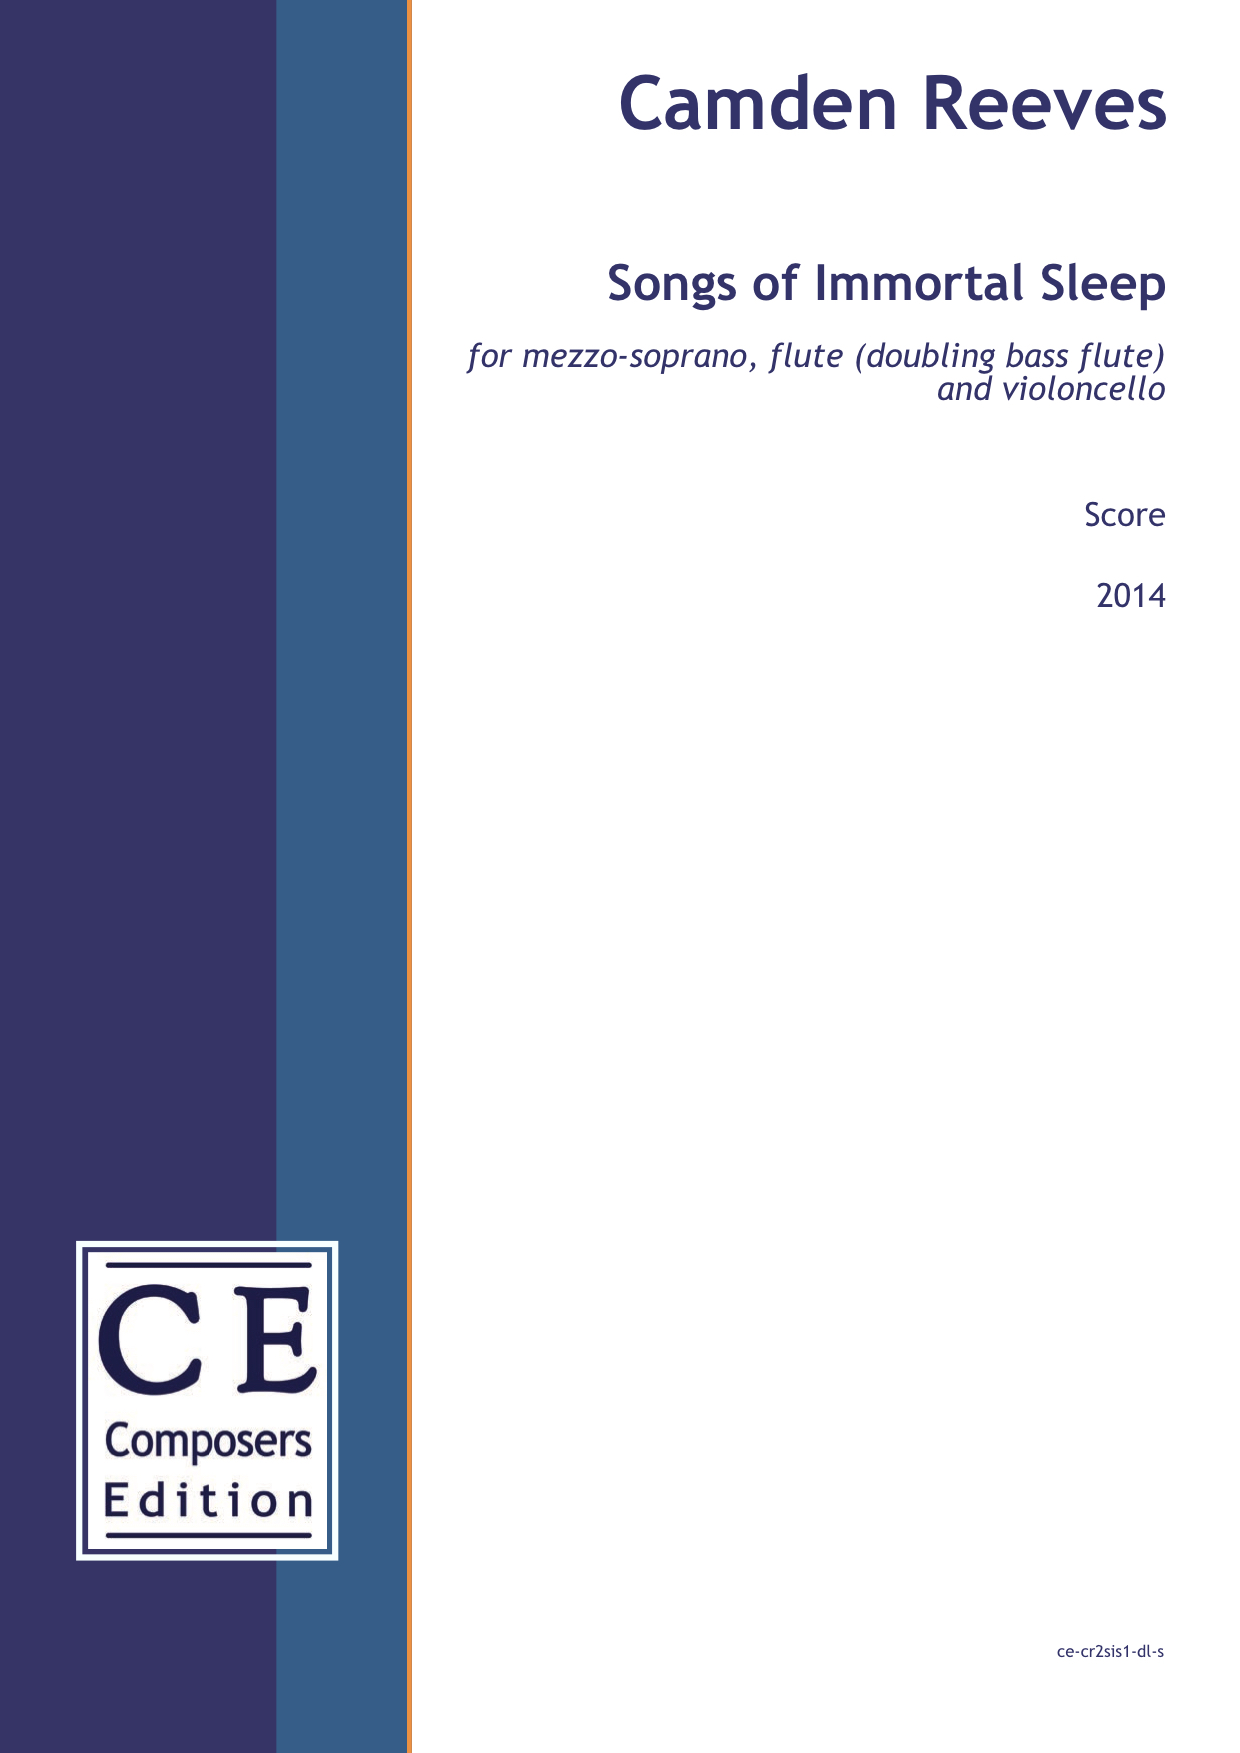 Camden Reeves: Songs of Immortal Sleep for mezzo-soprano, flute (doubling bass flute) and violoncello